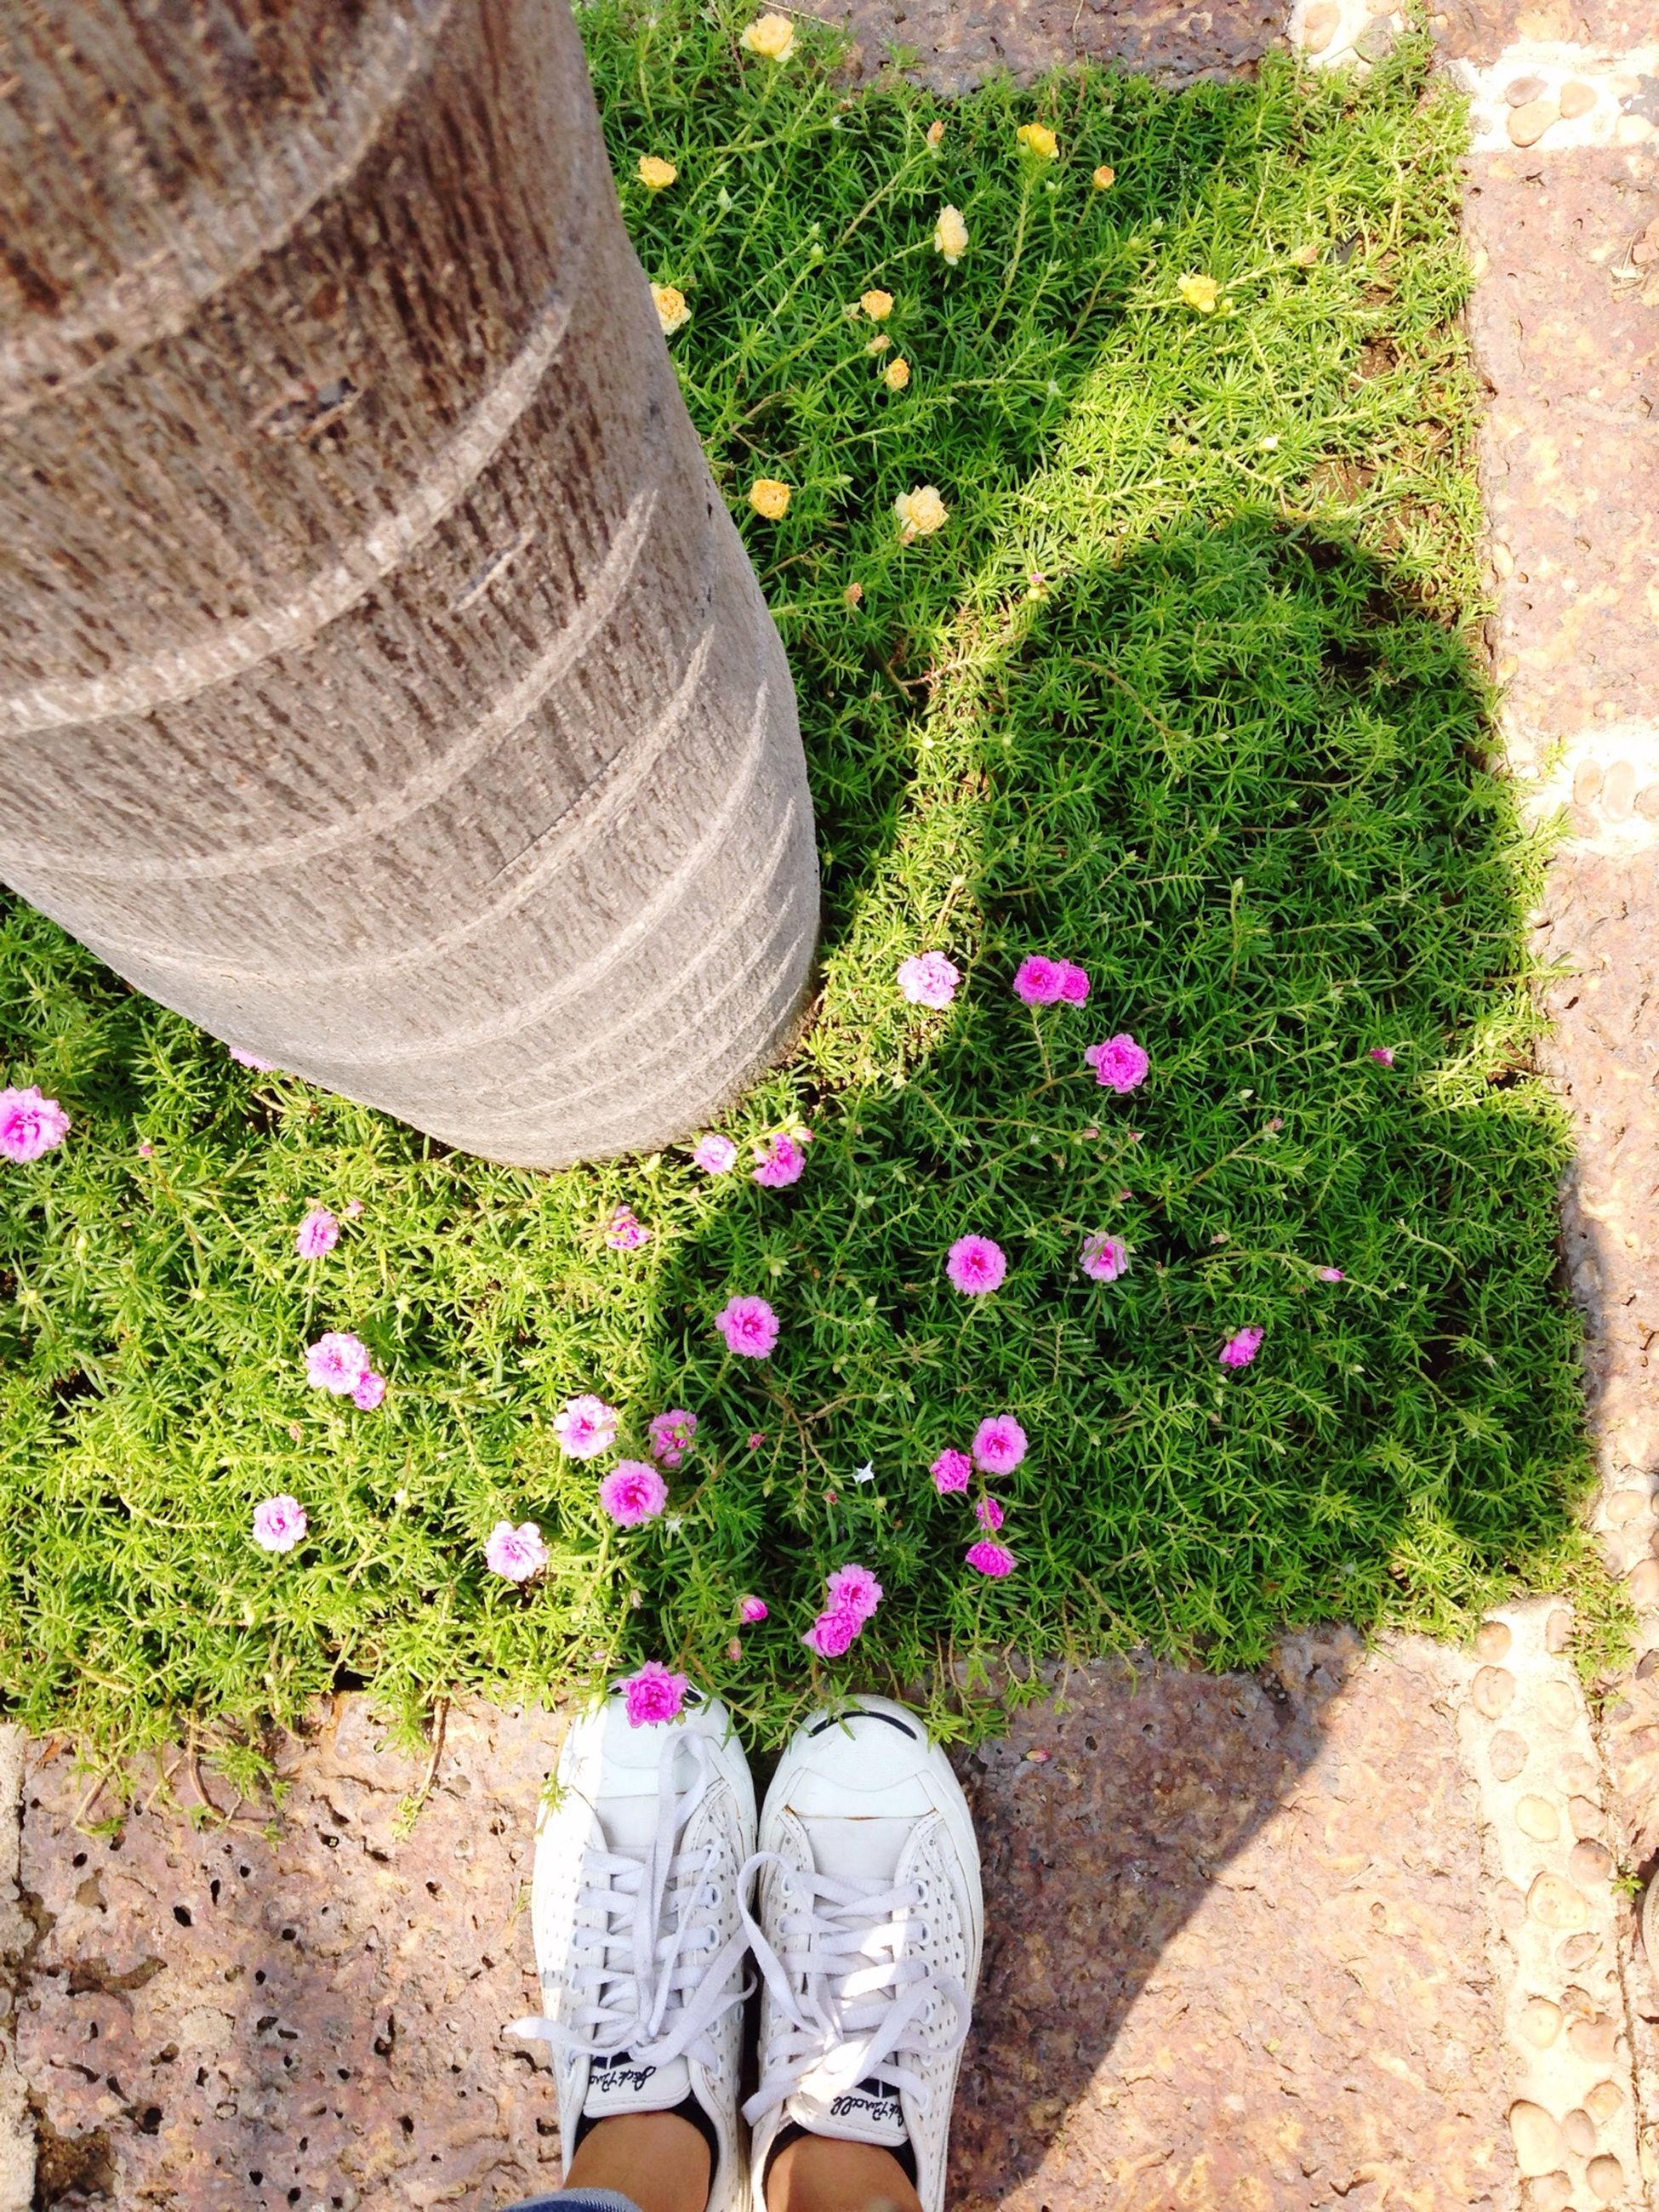 flower, low section, person, shoe, personal perspective, growth, standing, high angle view, freshness, plant, fragility, human foot, pink color, grass, field, petal, nature